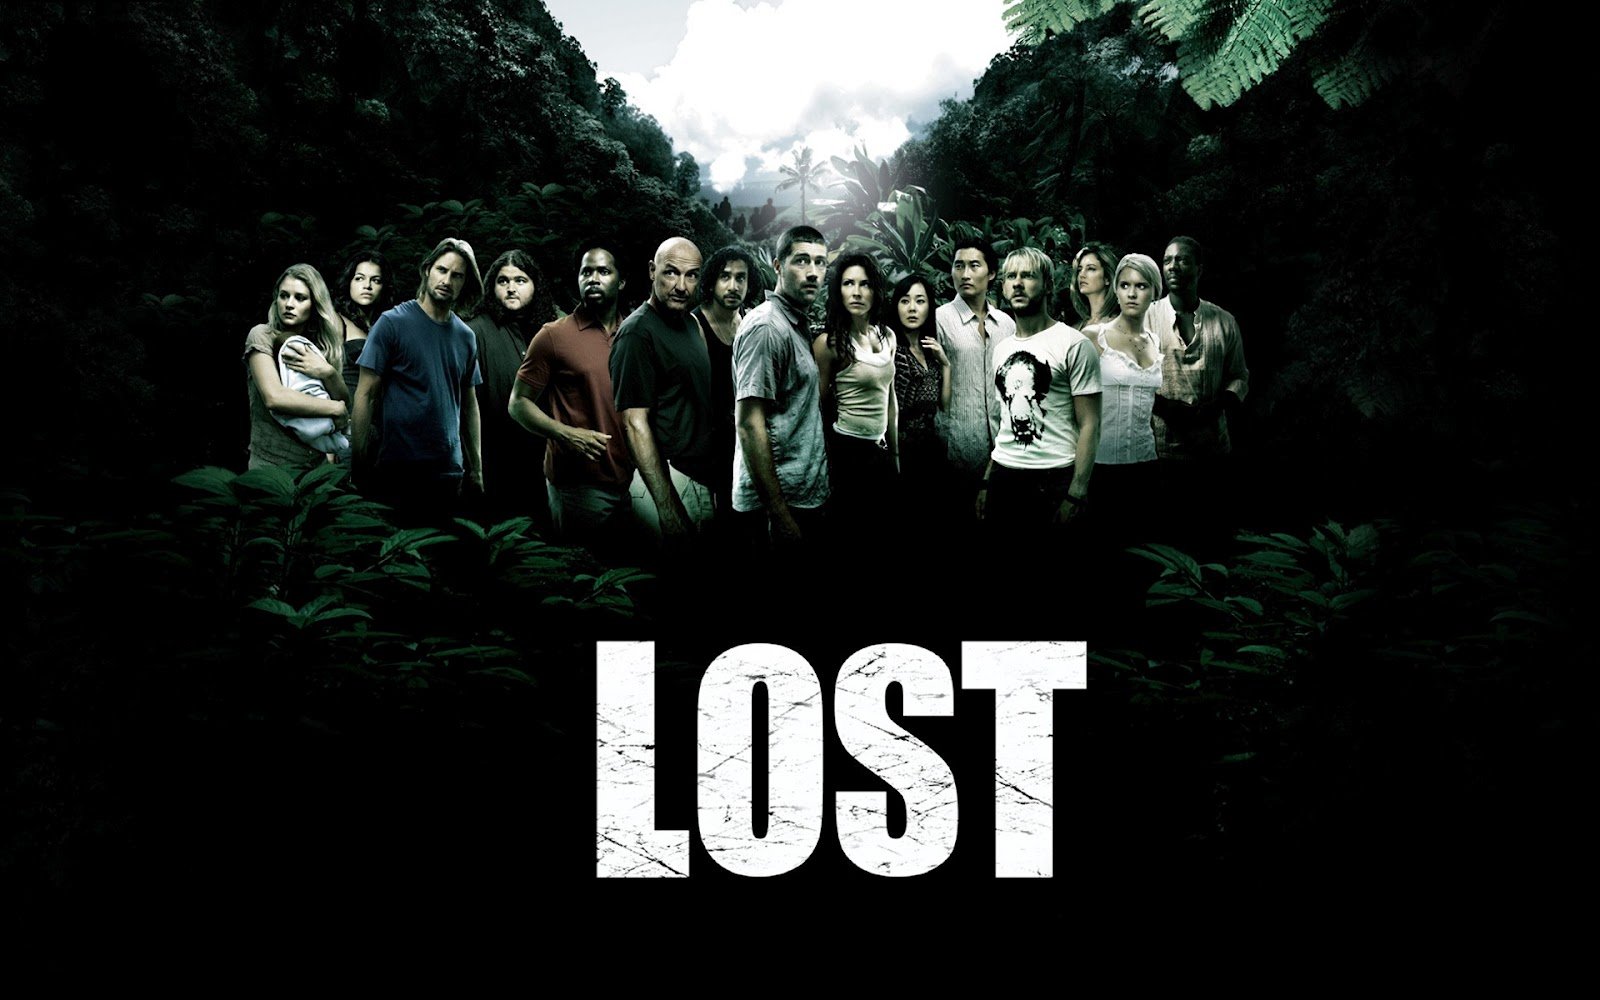 http://3.bp.blogspot.com/-lskXyX94Qx8/UEXsNGGx_0I/AAAAAAAAAJc/DrVdISMhDZY/s1600/6746-lost-tv-series-widescreen-wallpaper.jpg